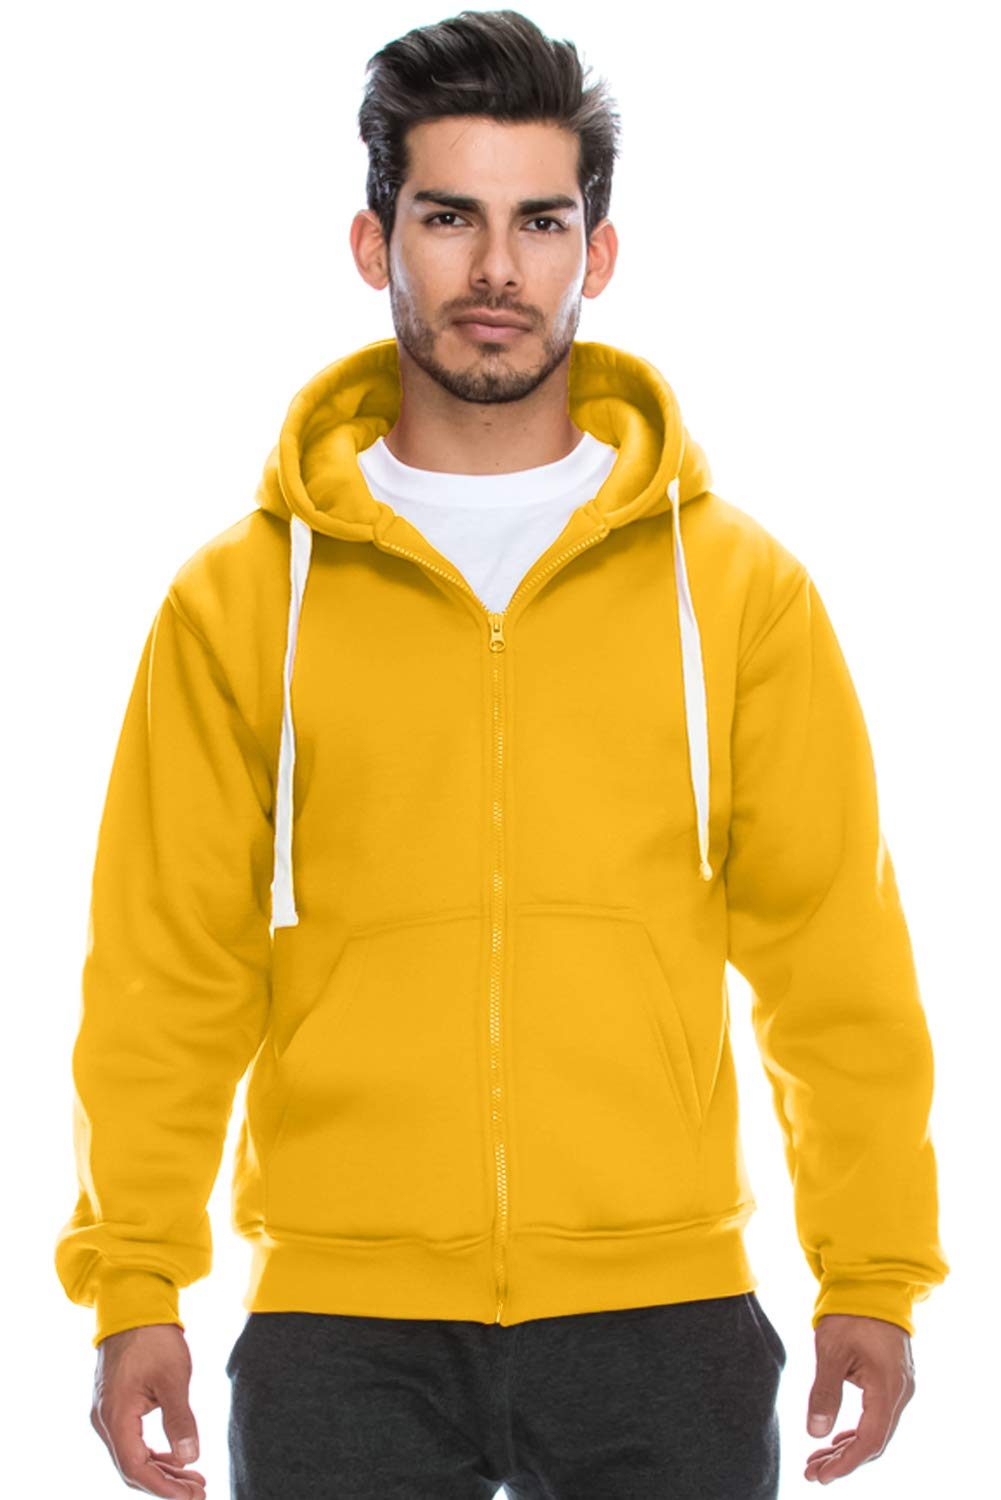 JC DISTRO Mens Hipster Hip Hop Basic Heavyweight Zipup Hoodie Jacket (Size Upto 6XL Plus)